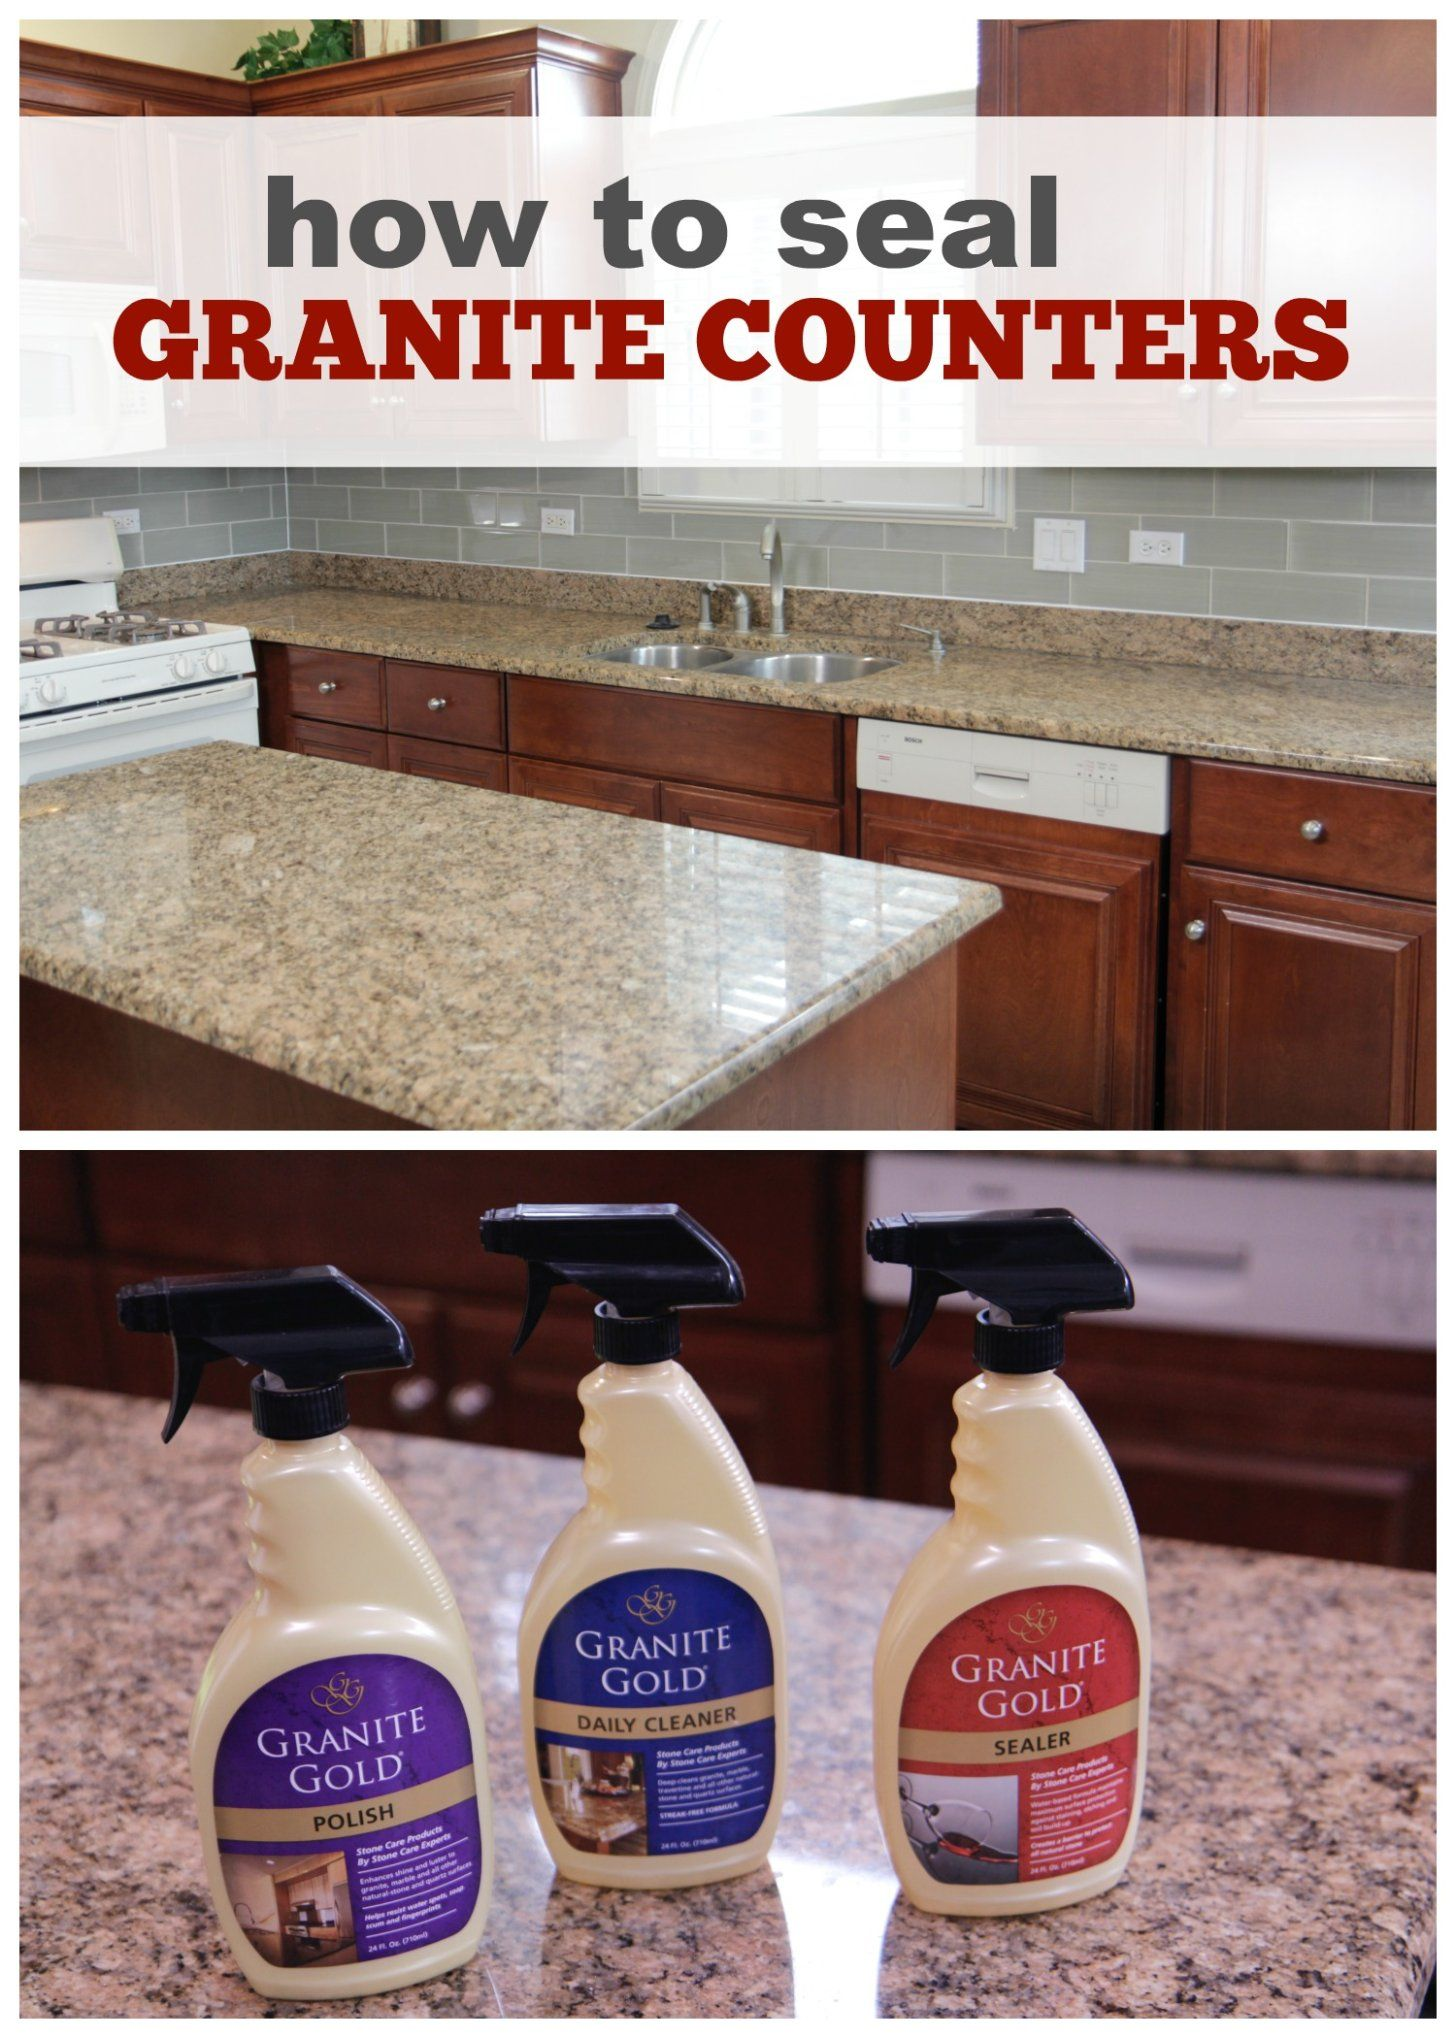 Seal Clean Polish Granite Countertops Wgn Tv How To Clean Granite Cleaning Granite Countertops Granite Countertops